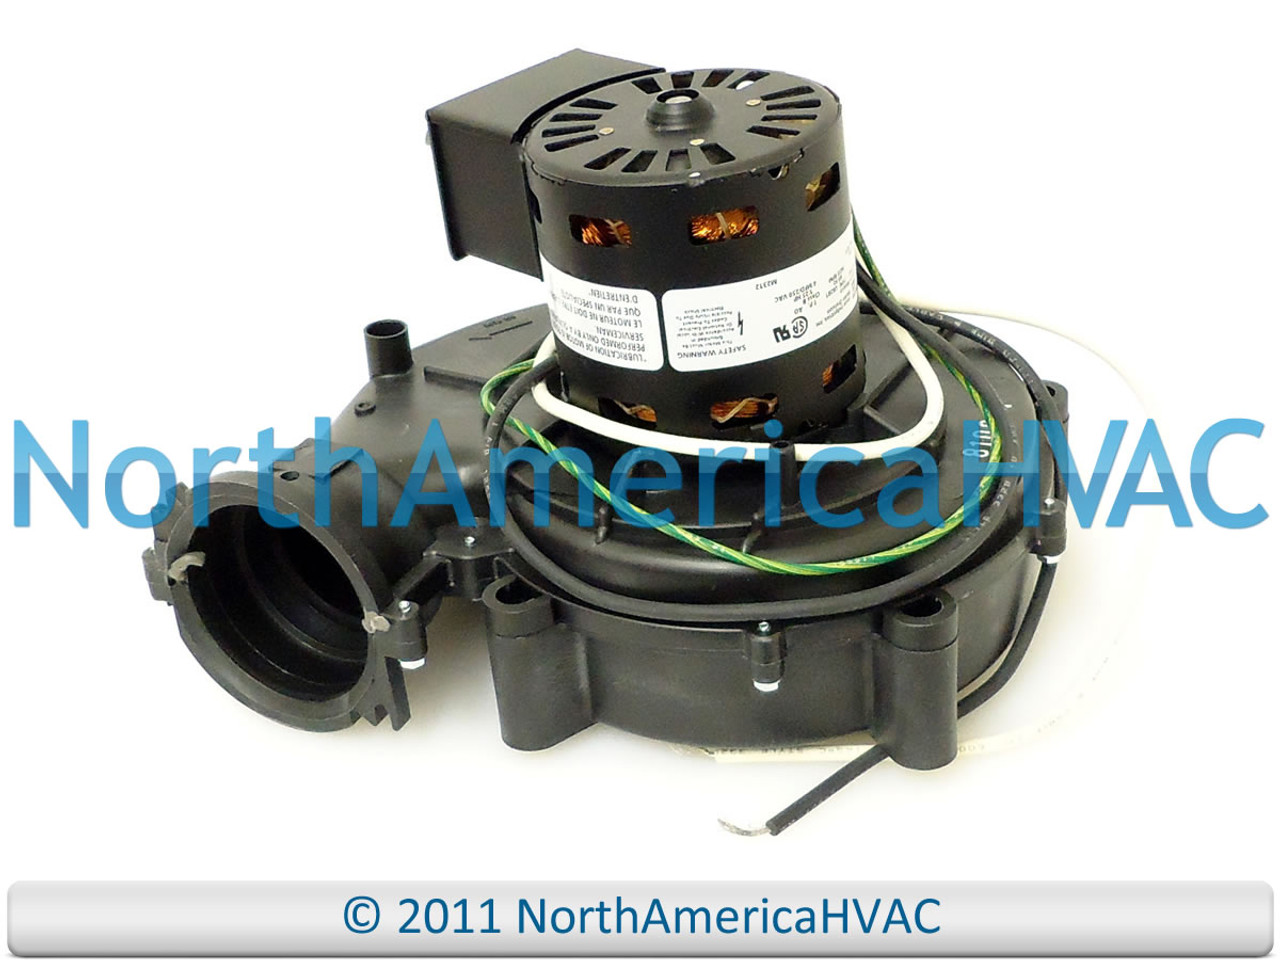 70624774 Fasco Replacement Furnace Exhaust Draft Inducer Motor